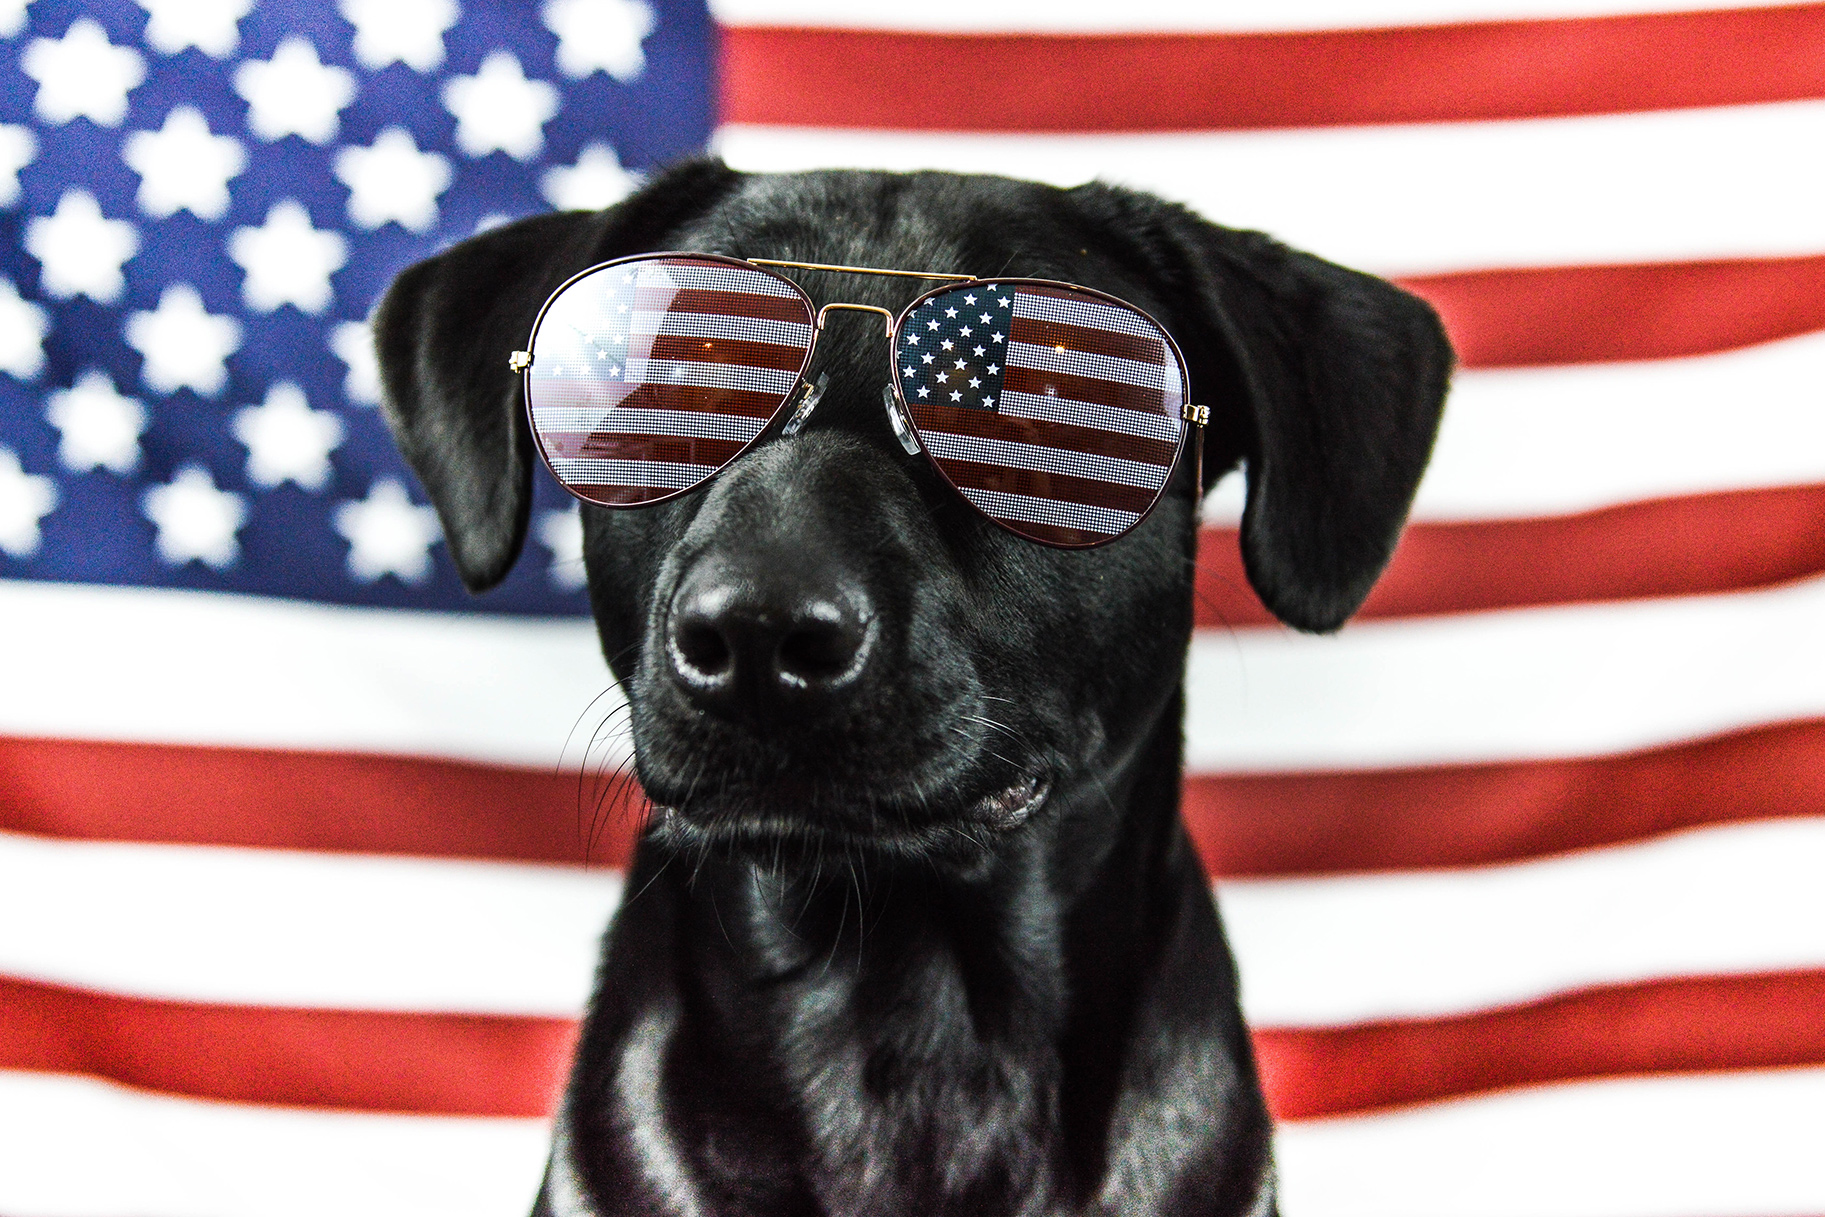 The U.S. has the highest dog population in the world.